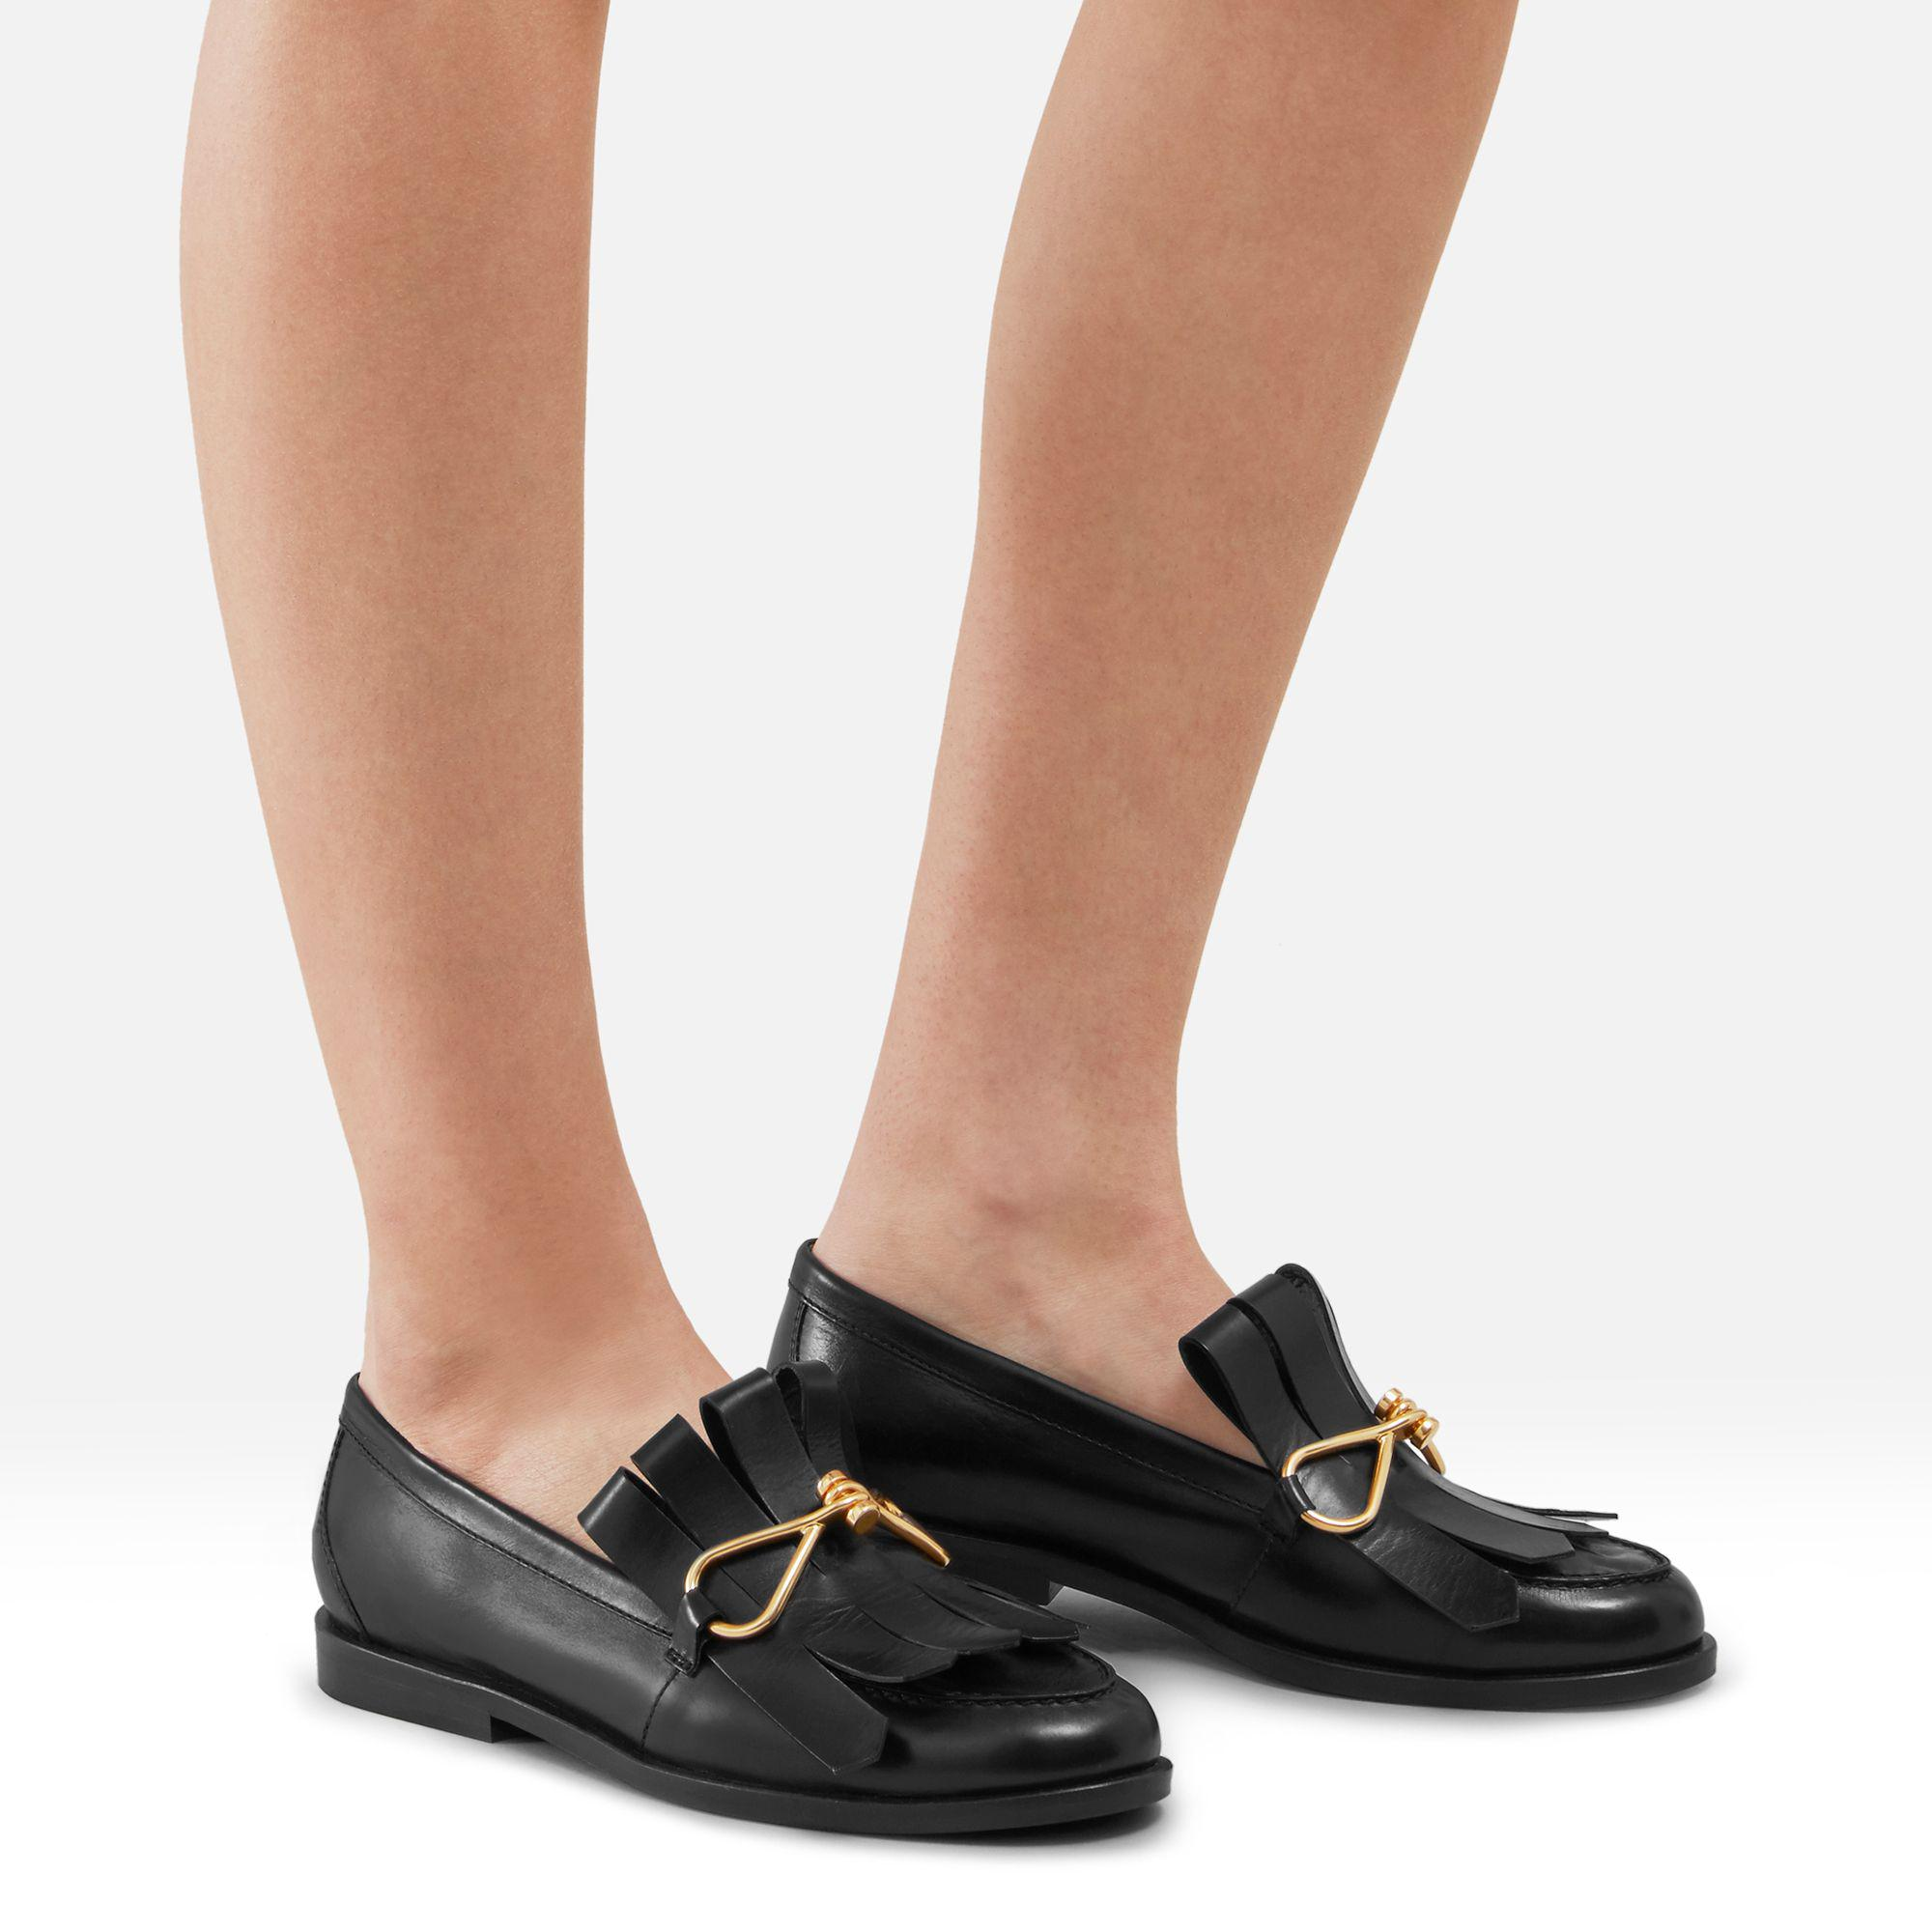 MULBERRY 20MM FRINGED LEATHER LOAFERS lCxPiOR